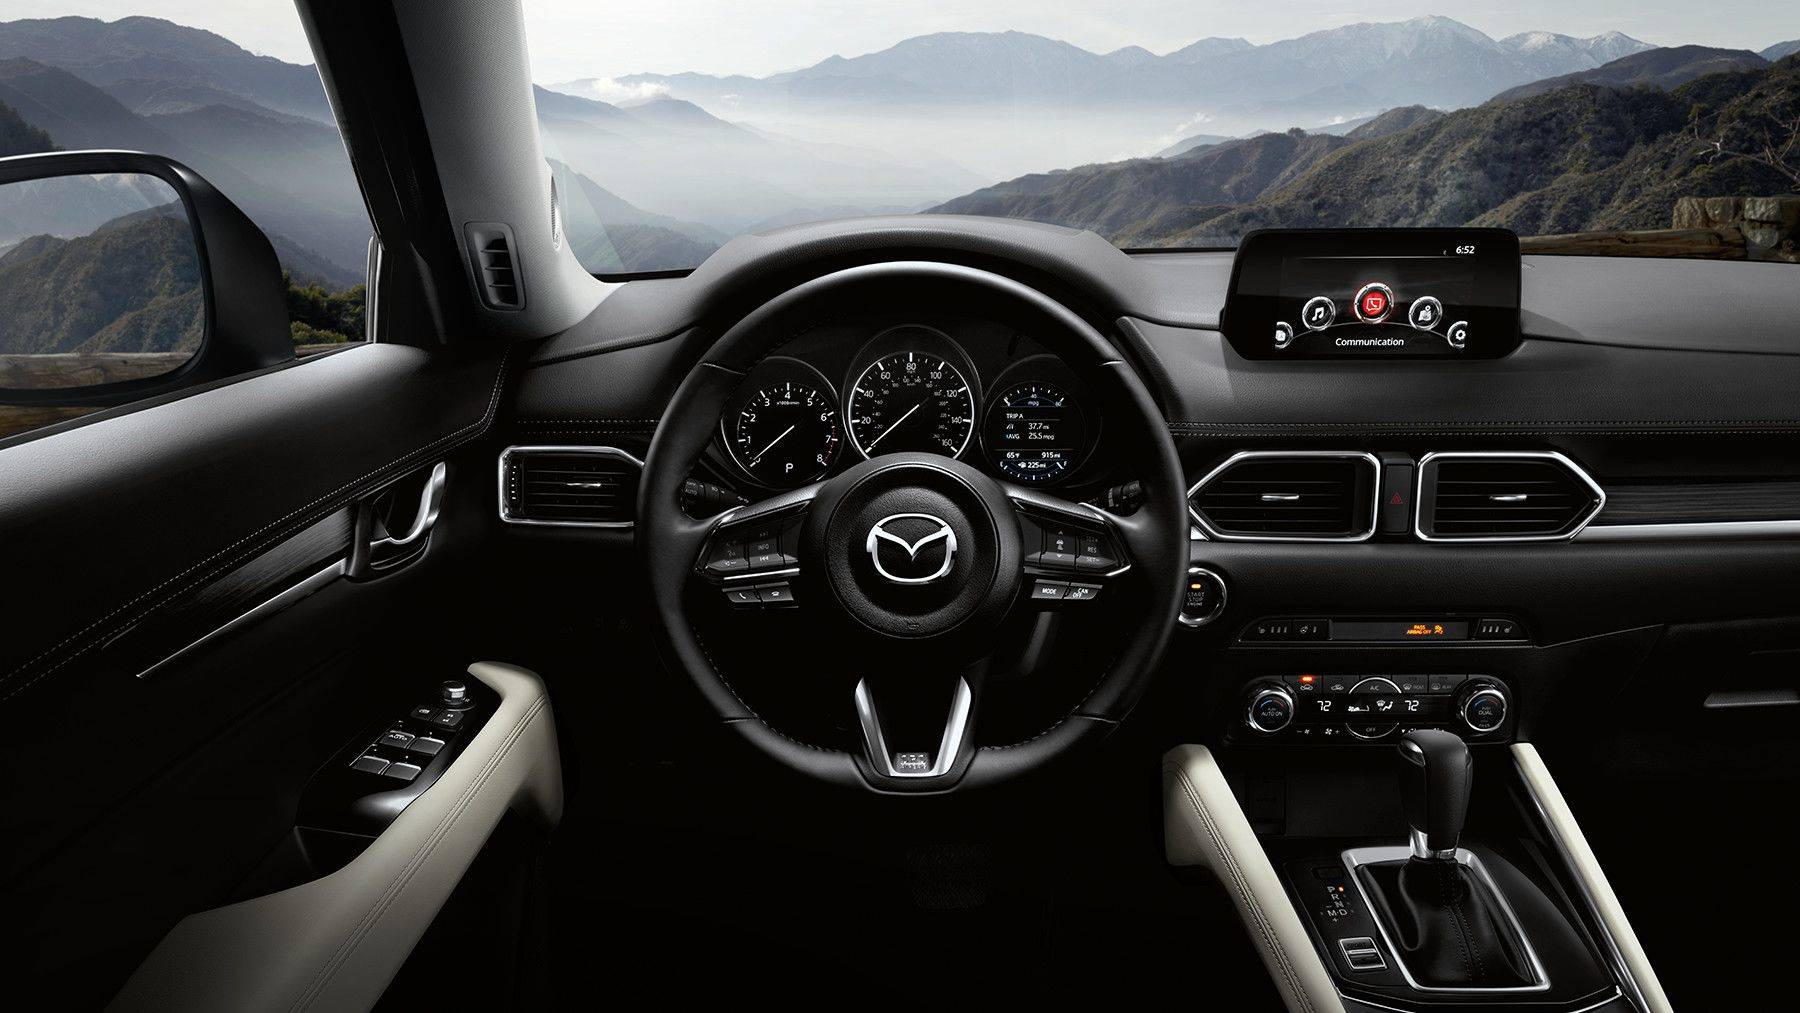 Get Comfortable in the 2018 Mazda CX-5